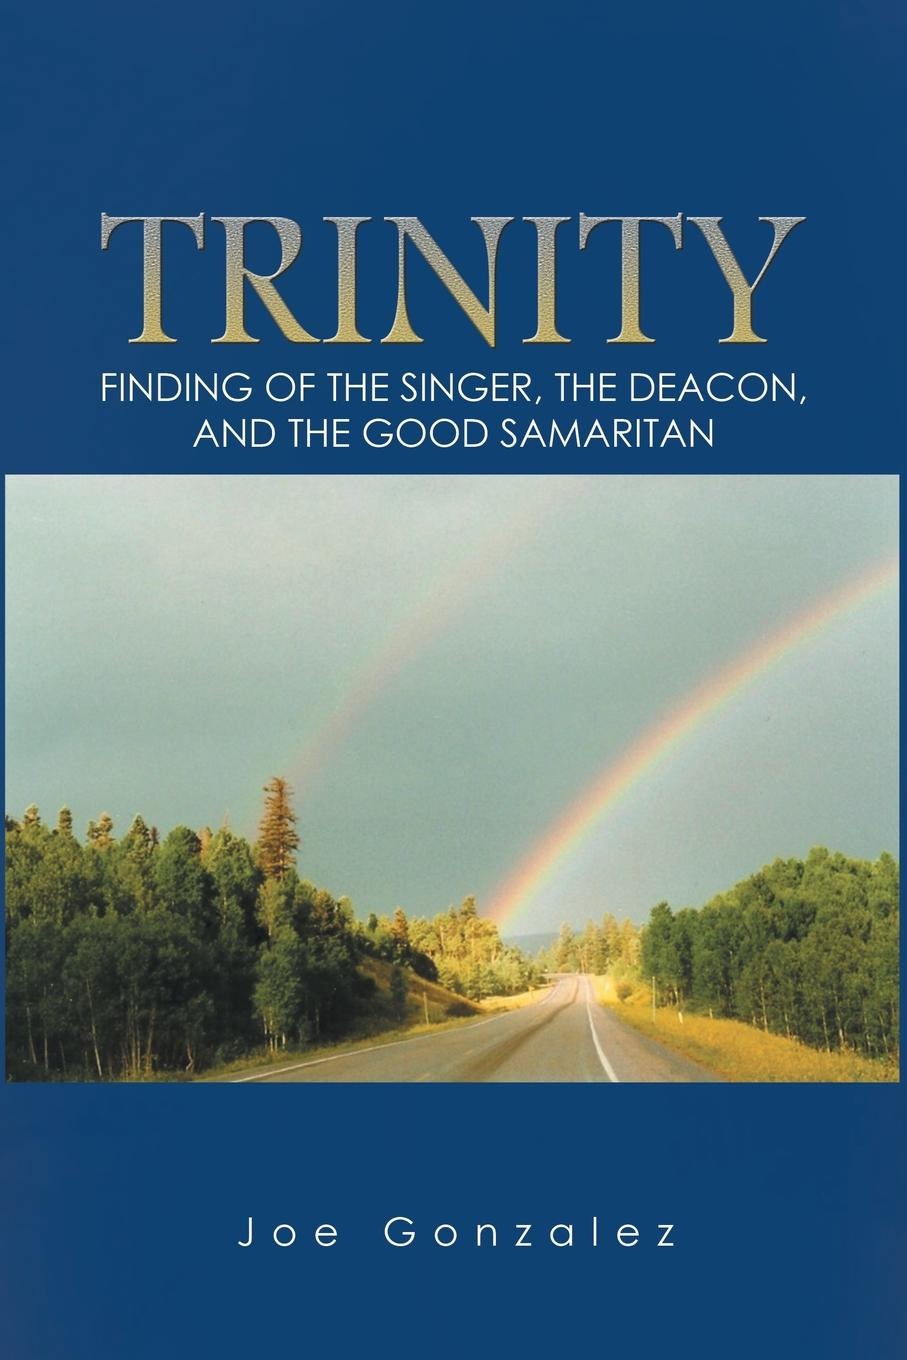 Joe Gonzalez Trinity. Finding of the Singer, the Deacon, and the Good Samaritan dr debra stewart finding the good in the workplace bully